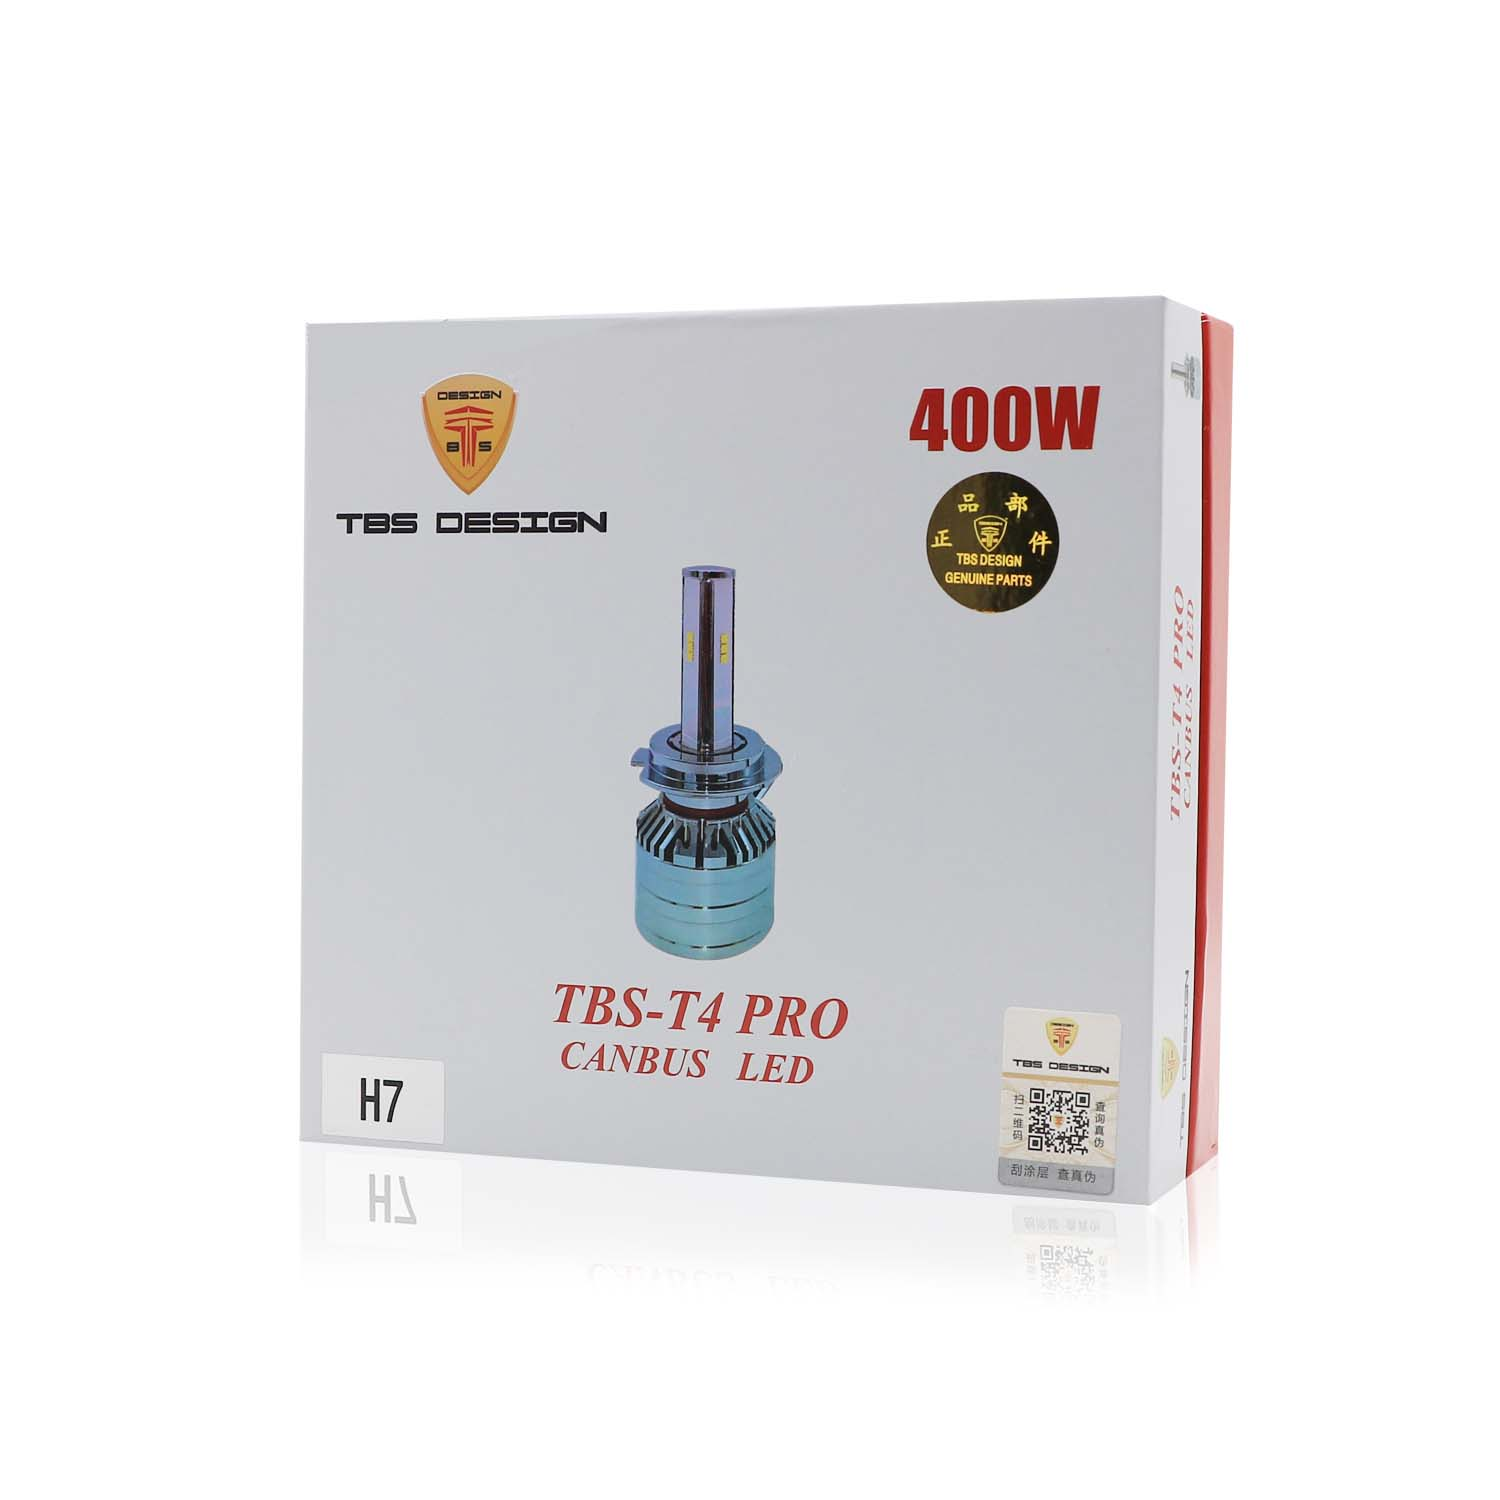 T4 PRO H7 Canbus LED Headlight 400W 40000LM